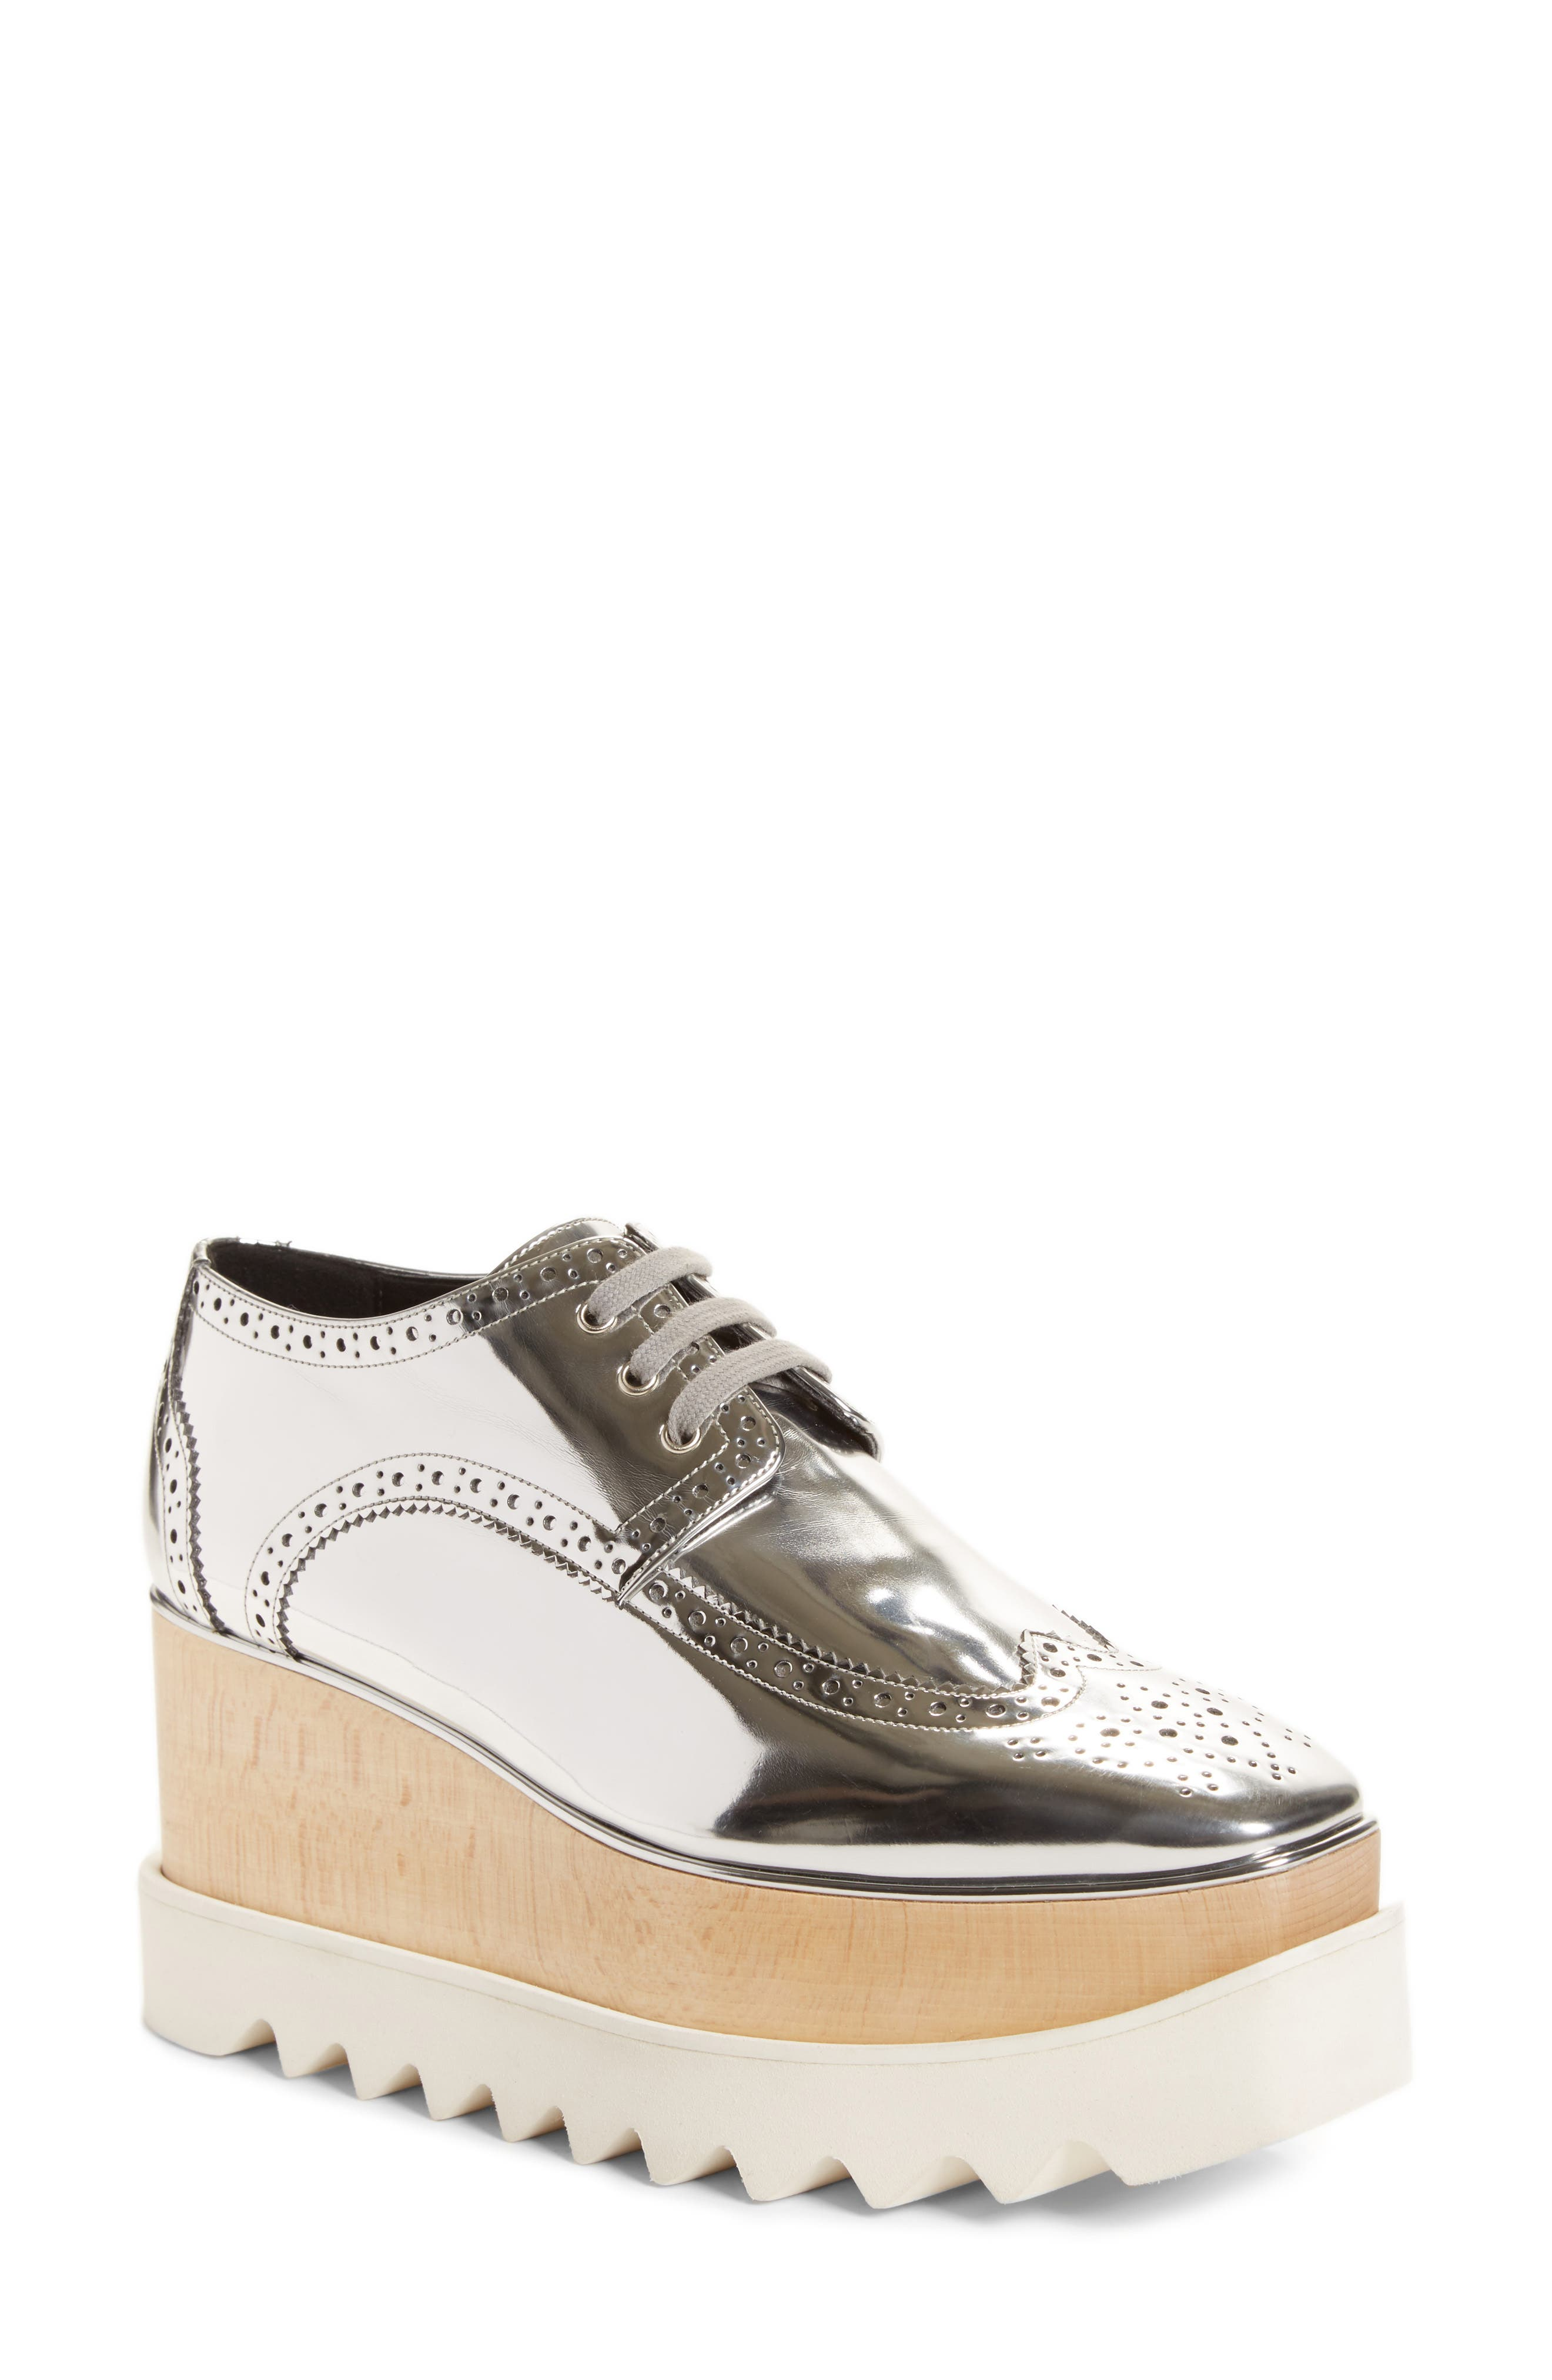 Elyse Brogue Platform Loafer,                             Main thumbnail 1, color,                             Metallic Silver